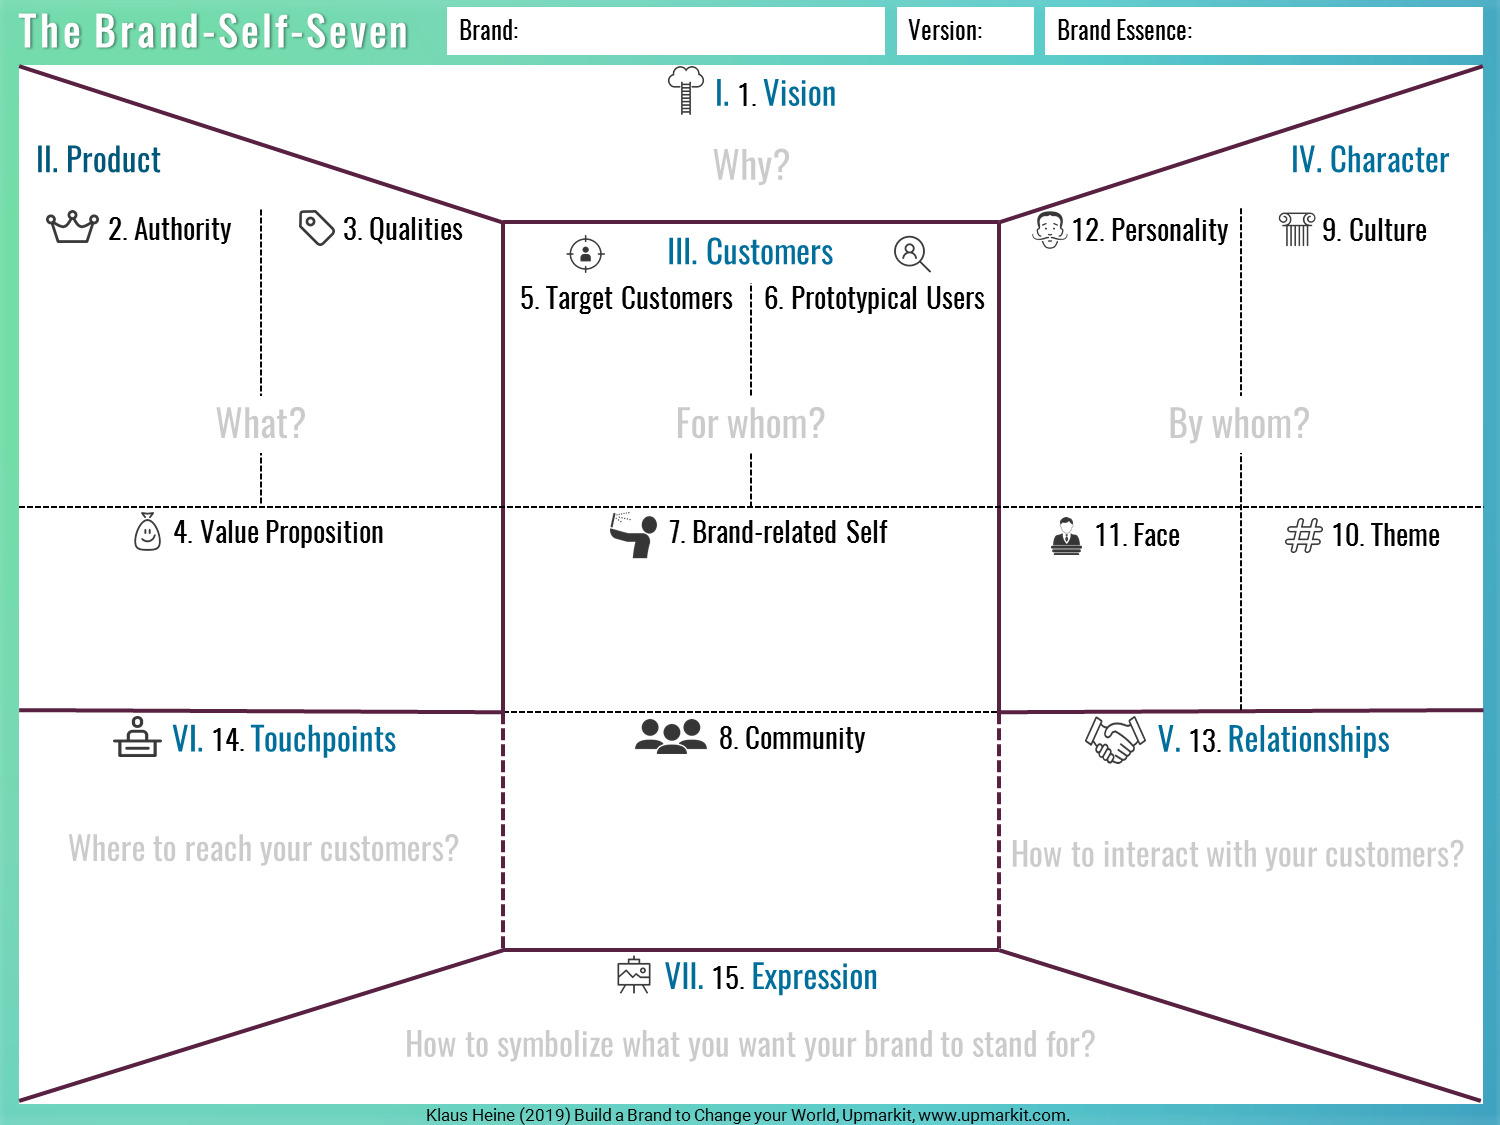 The Brand-Self-Seven Brand Identity Planning Model